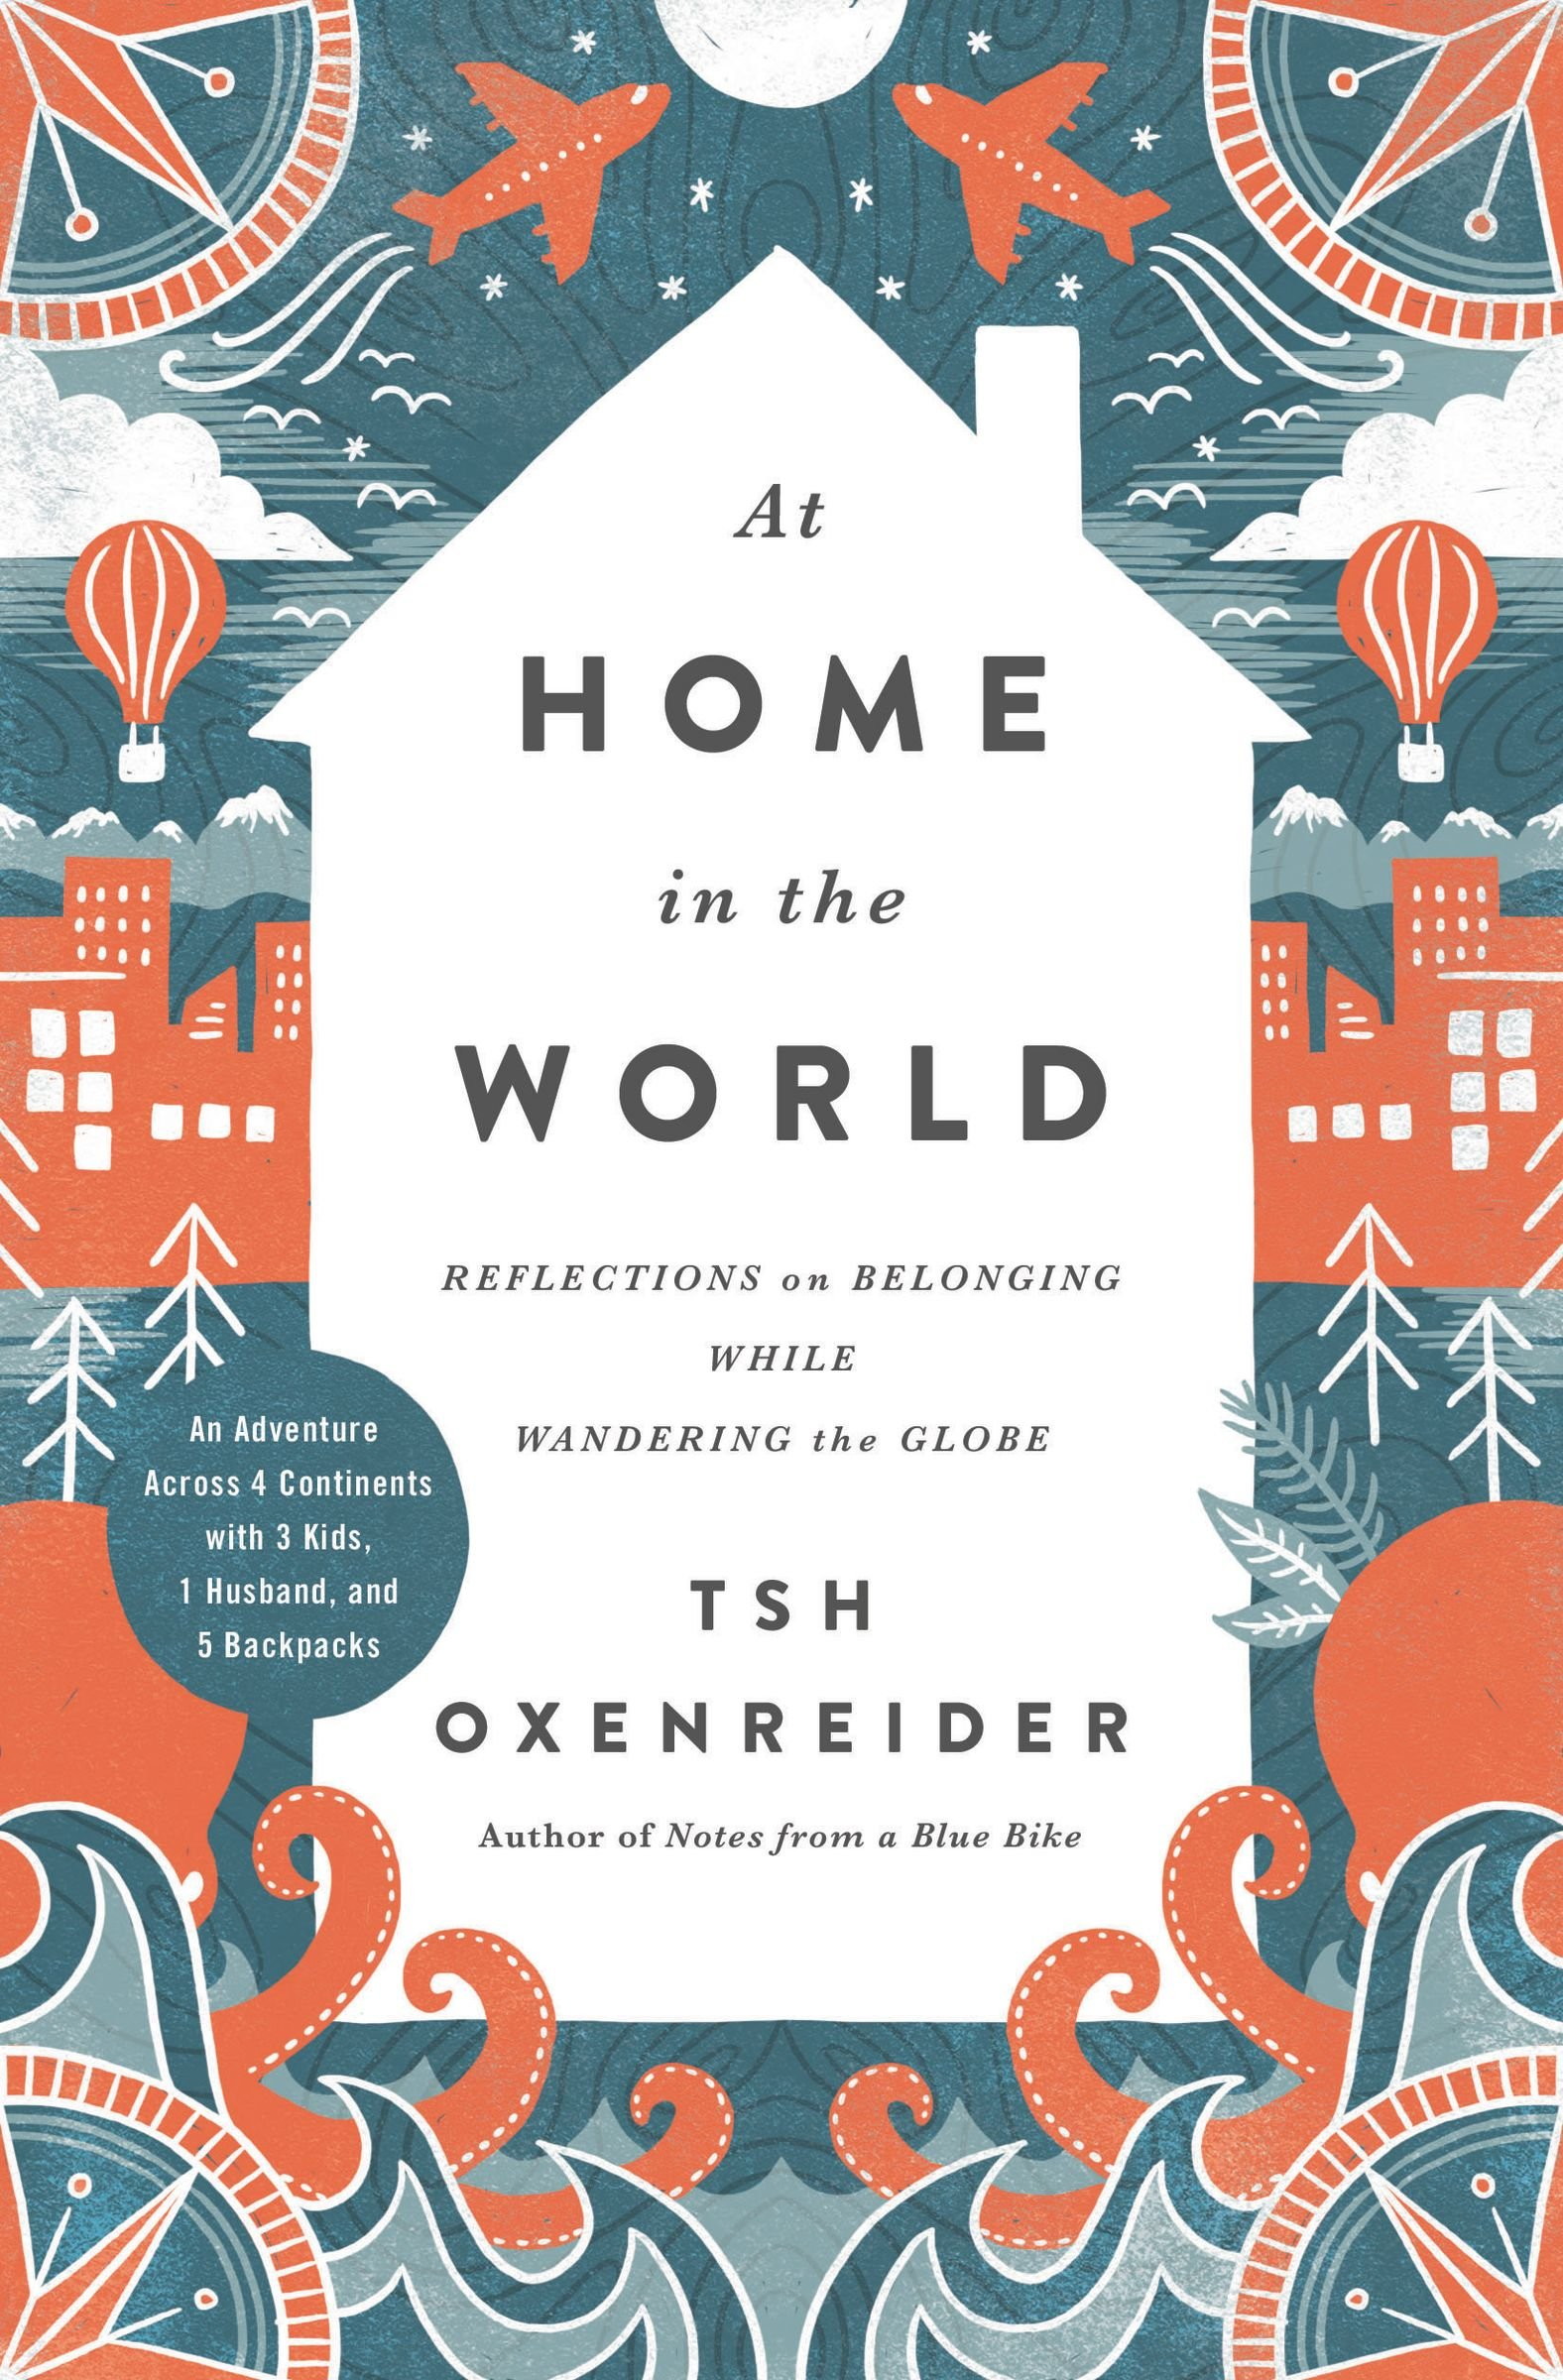 at home in the world reflections on belonging while wandering the at home in the world reflections on belonging while wandering the globe tsh oxenreider 9781400205592 amazon com books